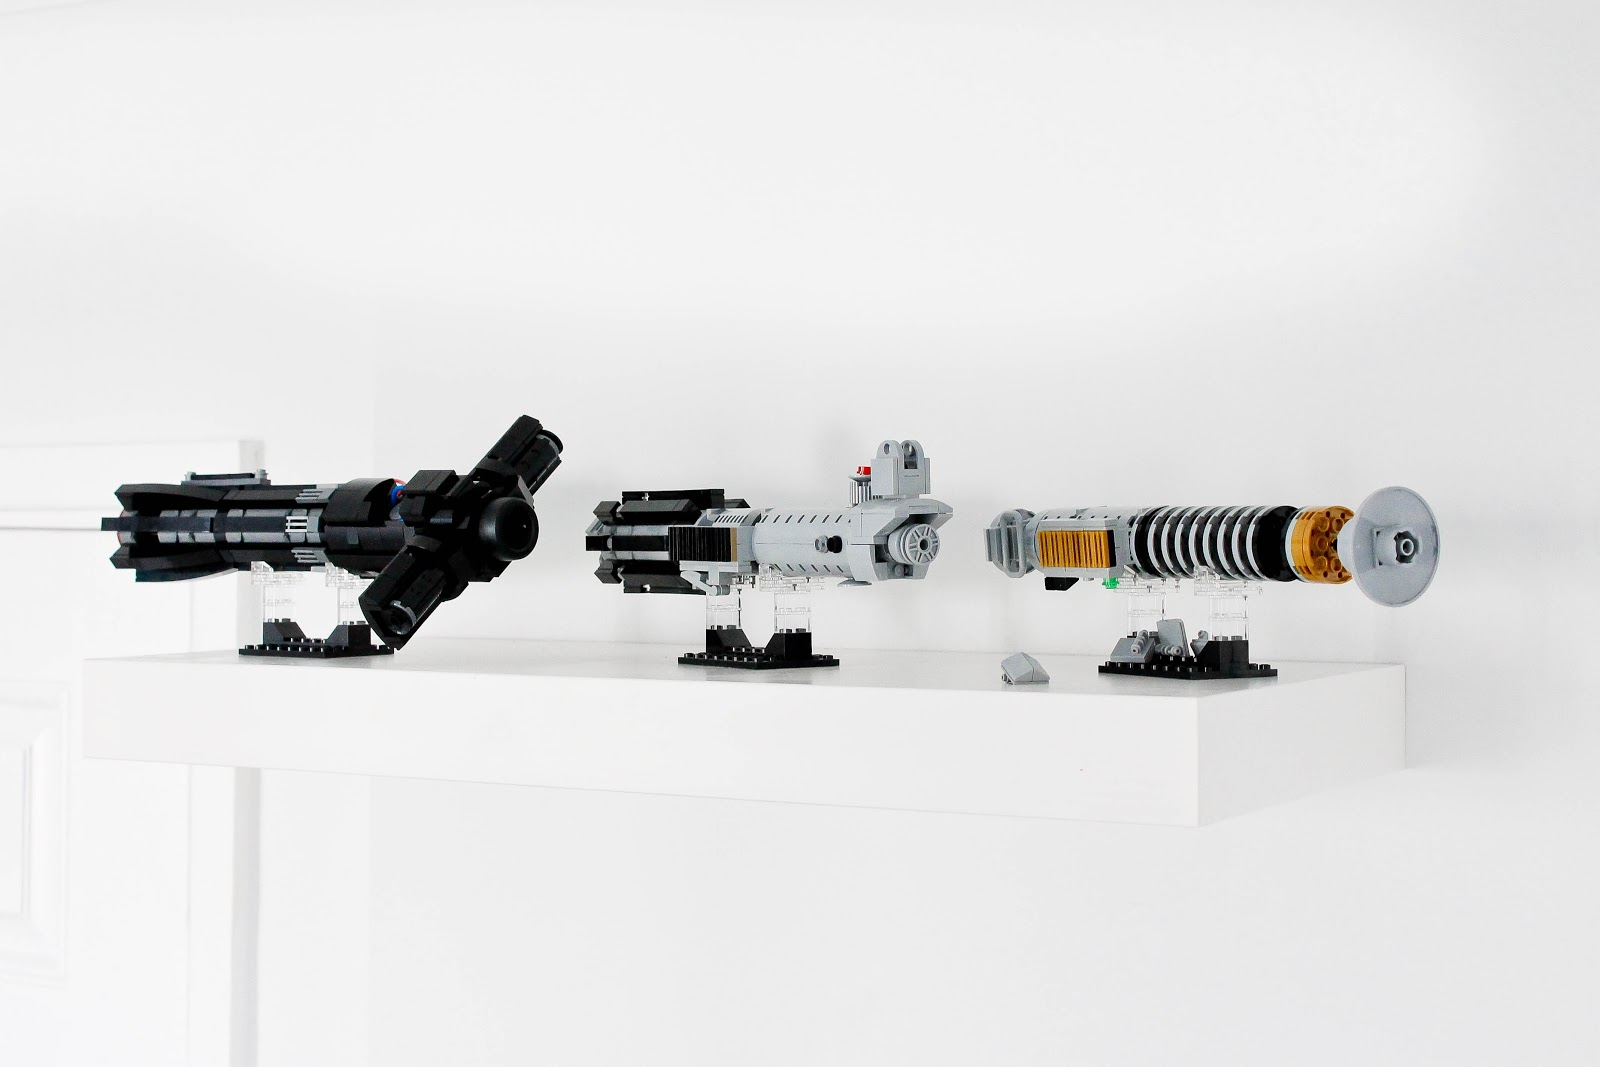 Lego lightsabers, Custom Lightsabers, Kylo Ren Lightsaber, Rey lightsaber, Lukes lightsaber, Star Wars, LEGO star wars, Star Wars lightsabers,modern office, modern office desk, modern office chairs, ikea office, home office, home study, modern office interior, Scandinavian decor, Scandinavian interior, Scandinavian office furniture, lego display, lego lightsabers, office room tour, home interiors,